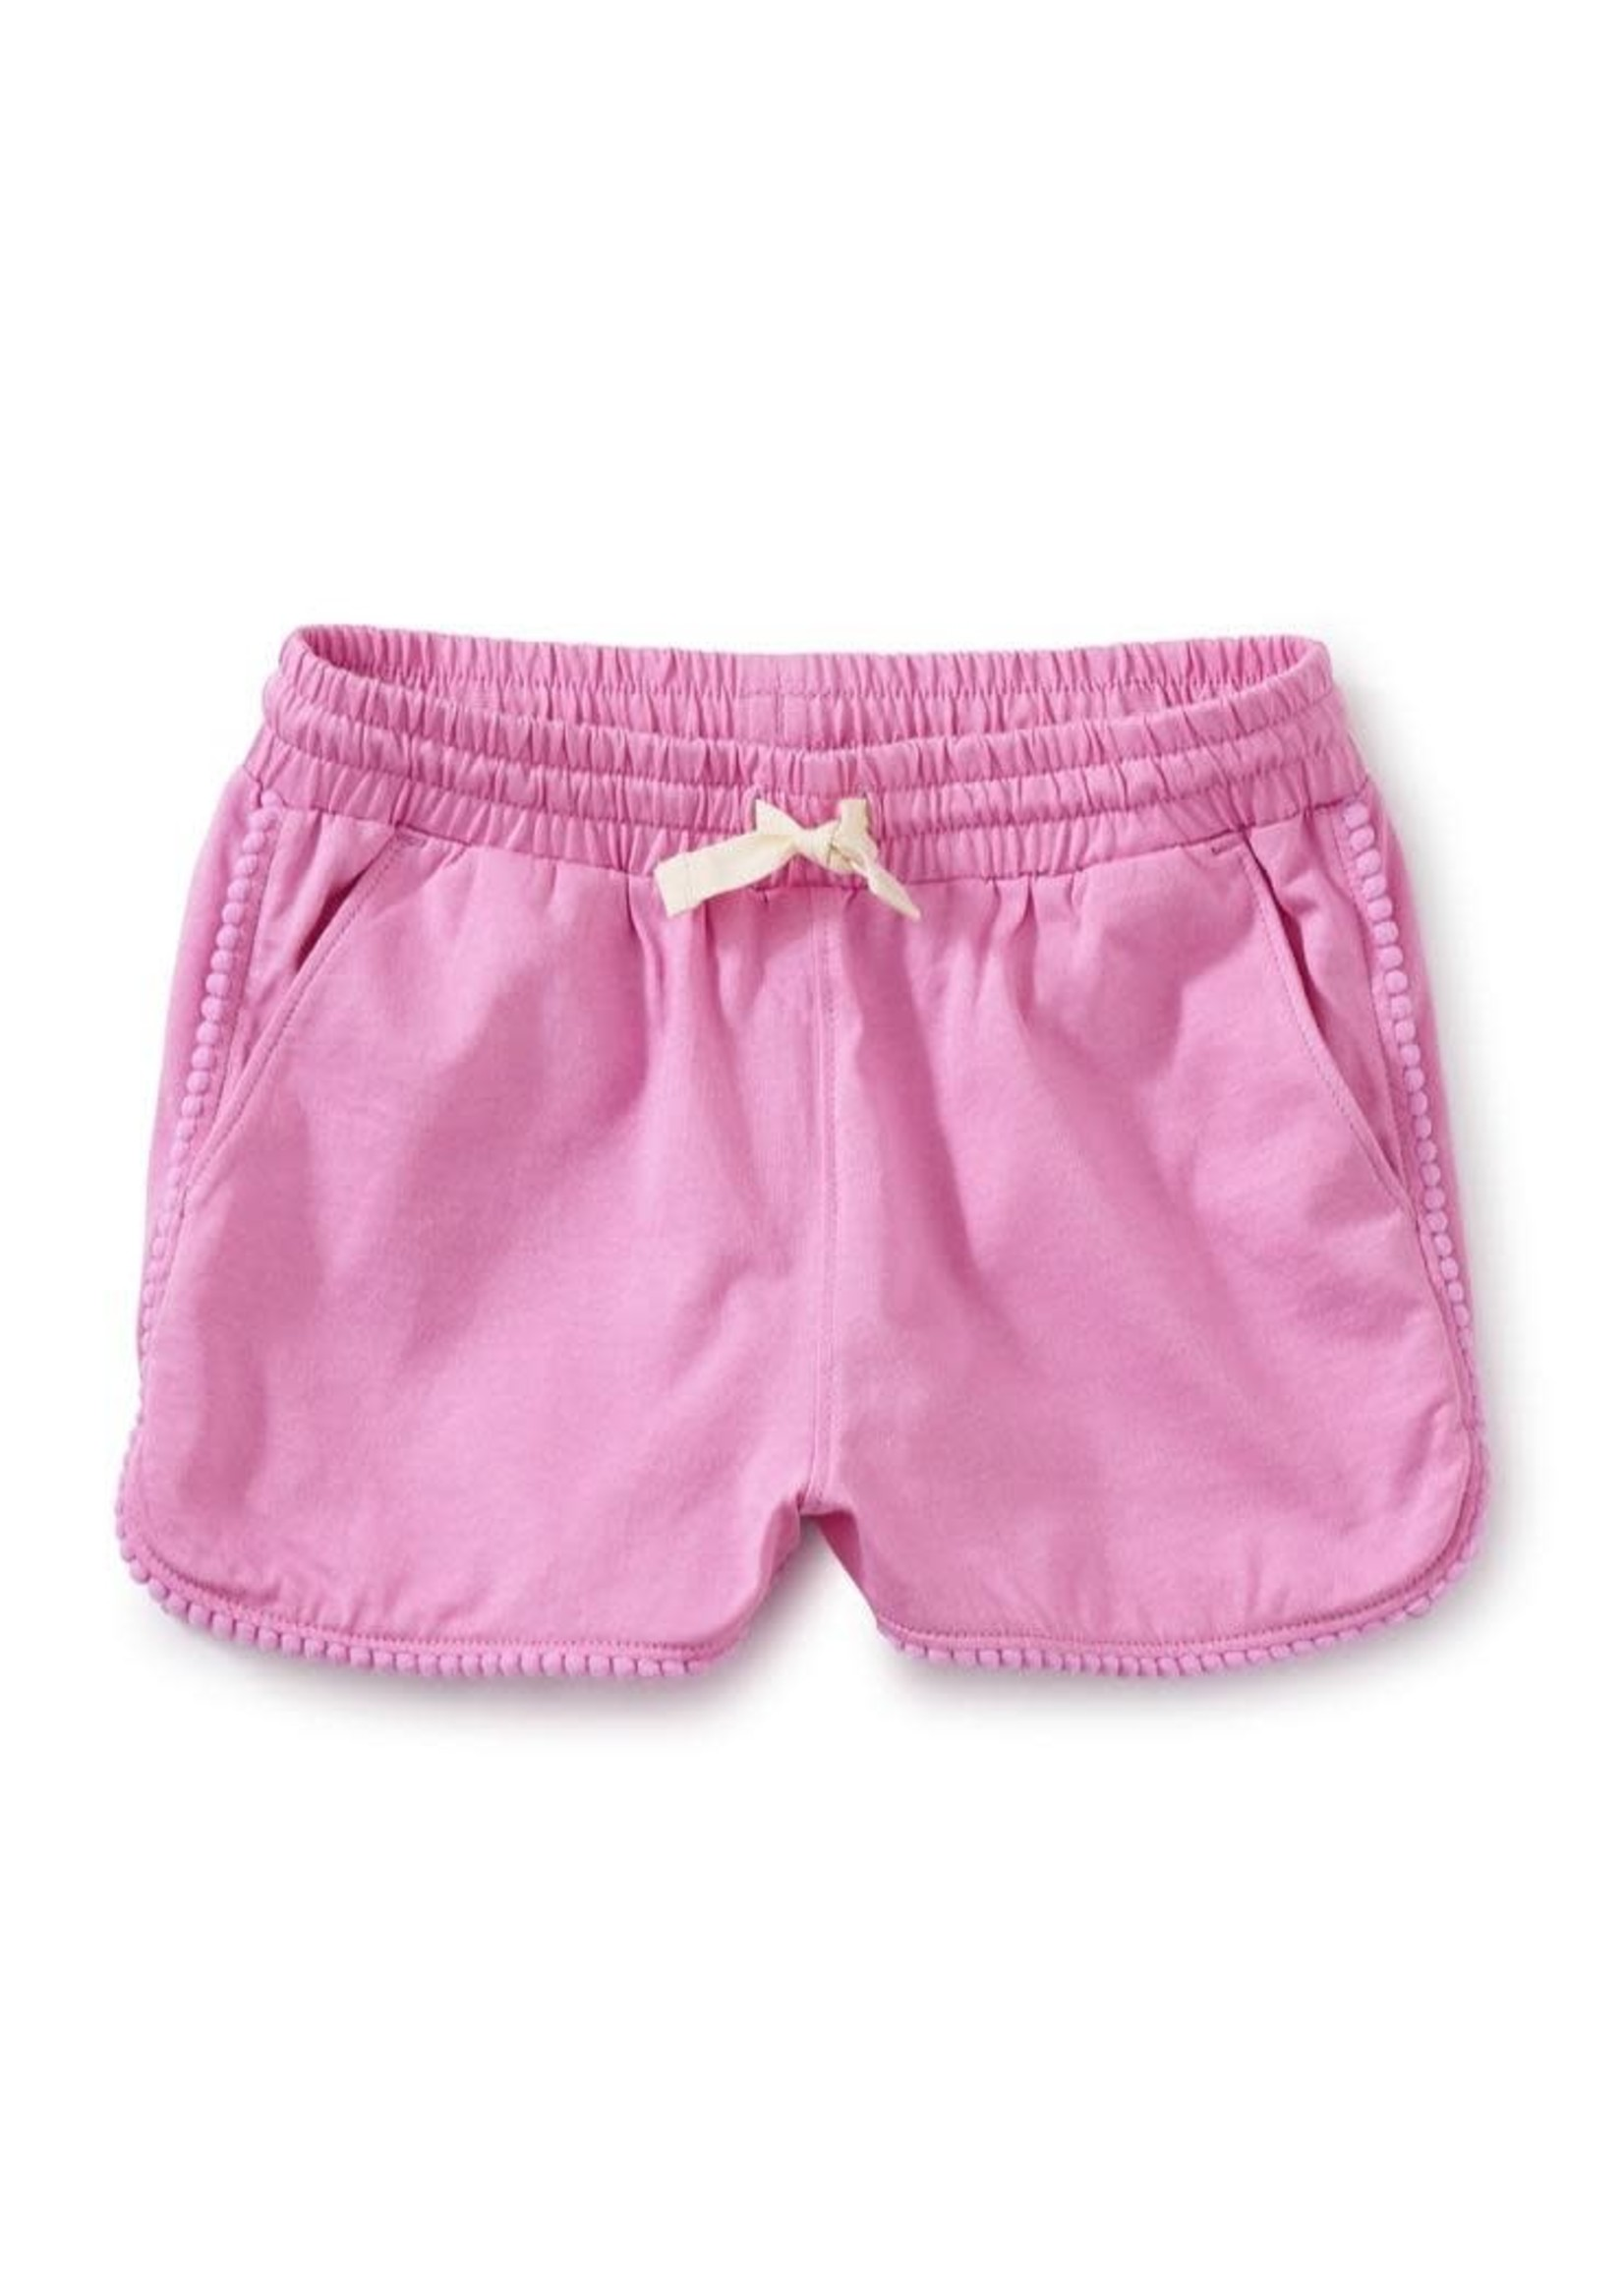 Tea Collection Pom-Pom Shorts in Perennial Pink